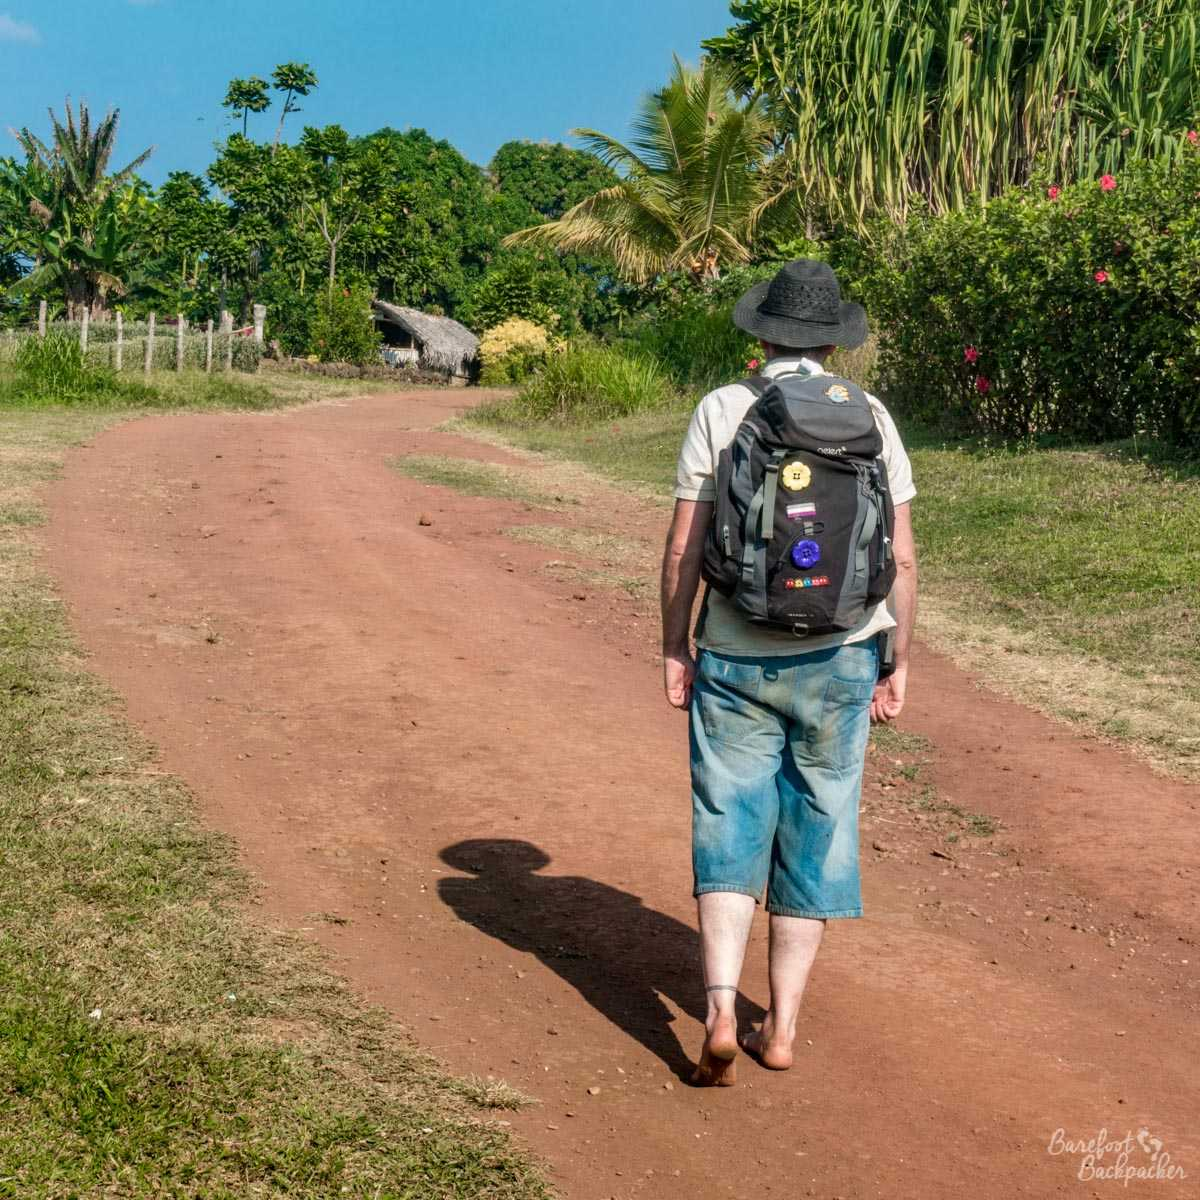 Hiking barefoot along a road on Gaua, Vanuatu.